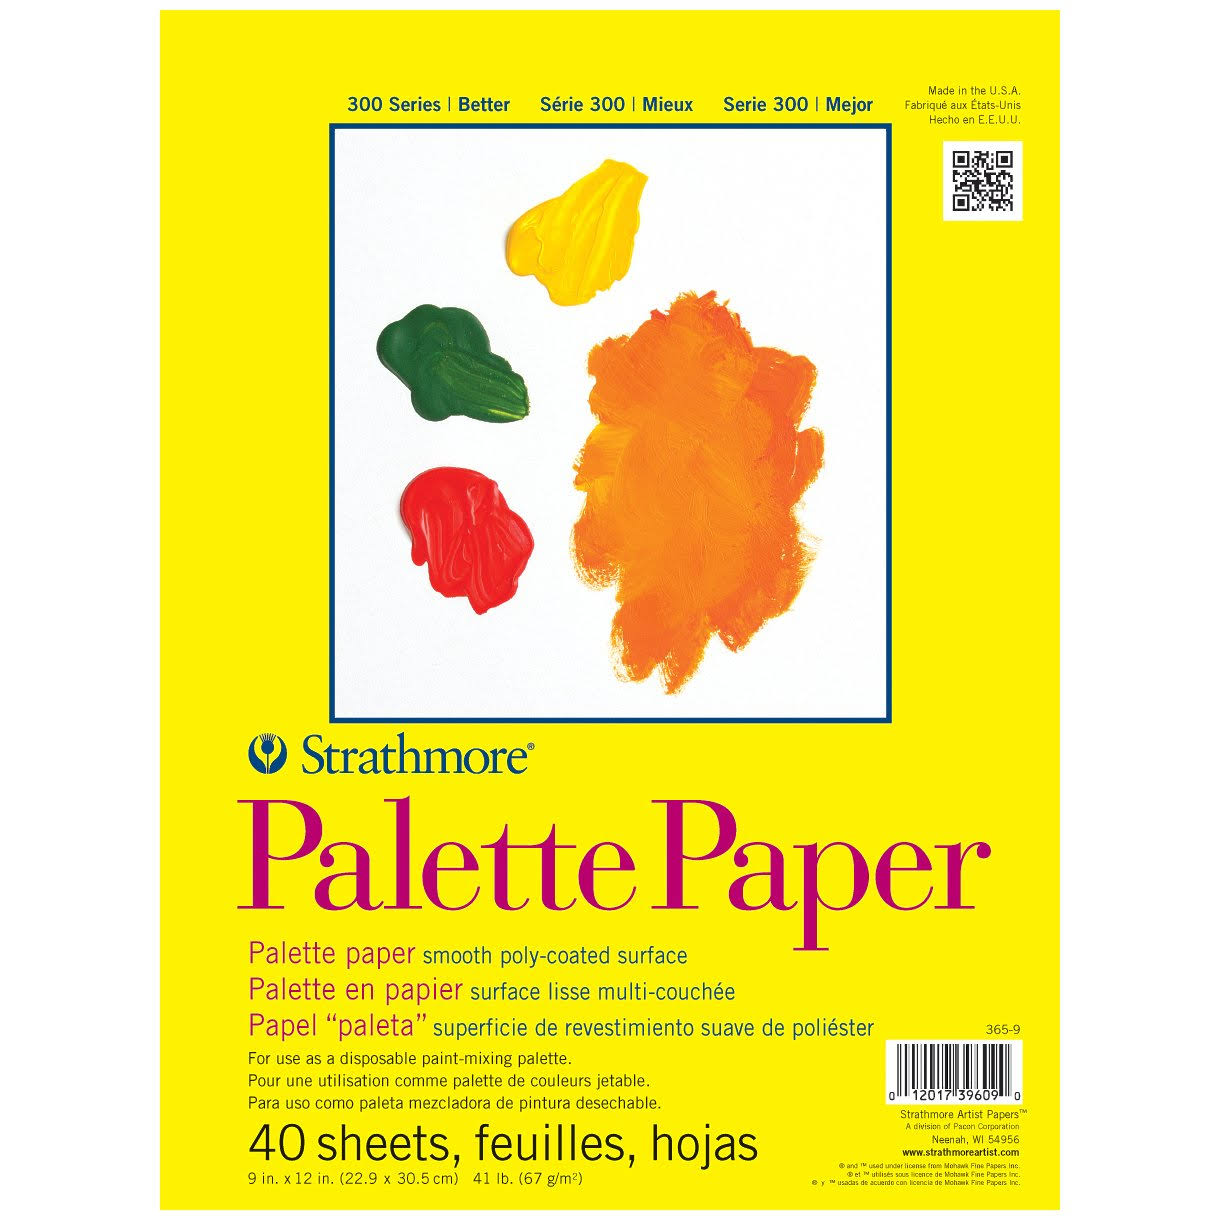 Strathmore Palette Paper Pad - 9in x 12in, 41lb, 40 Sheets